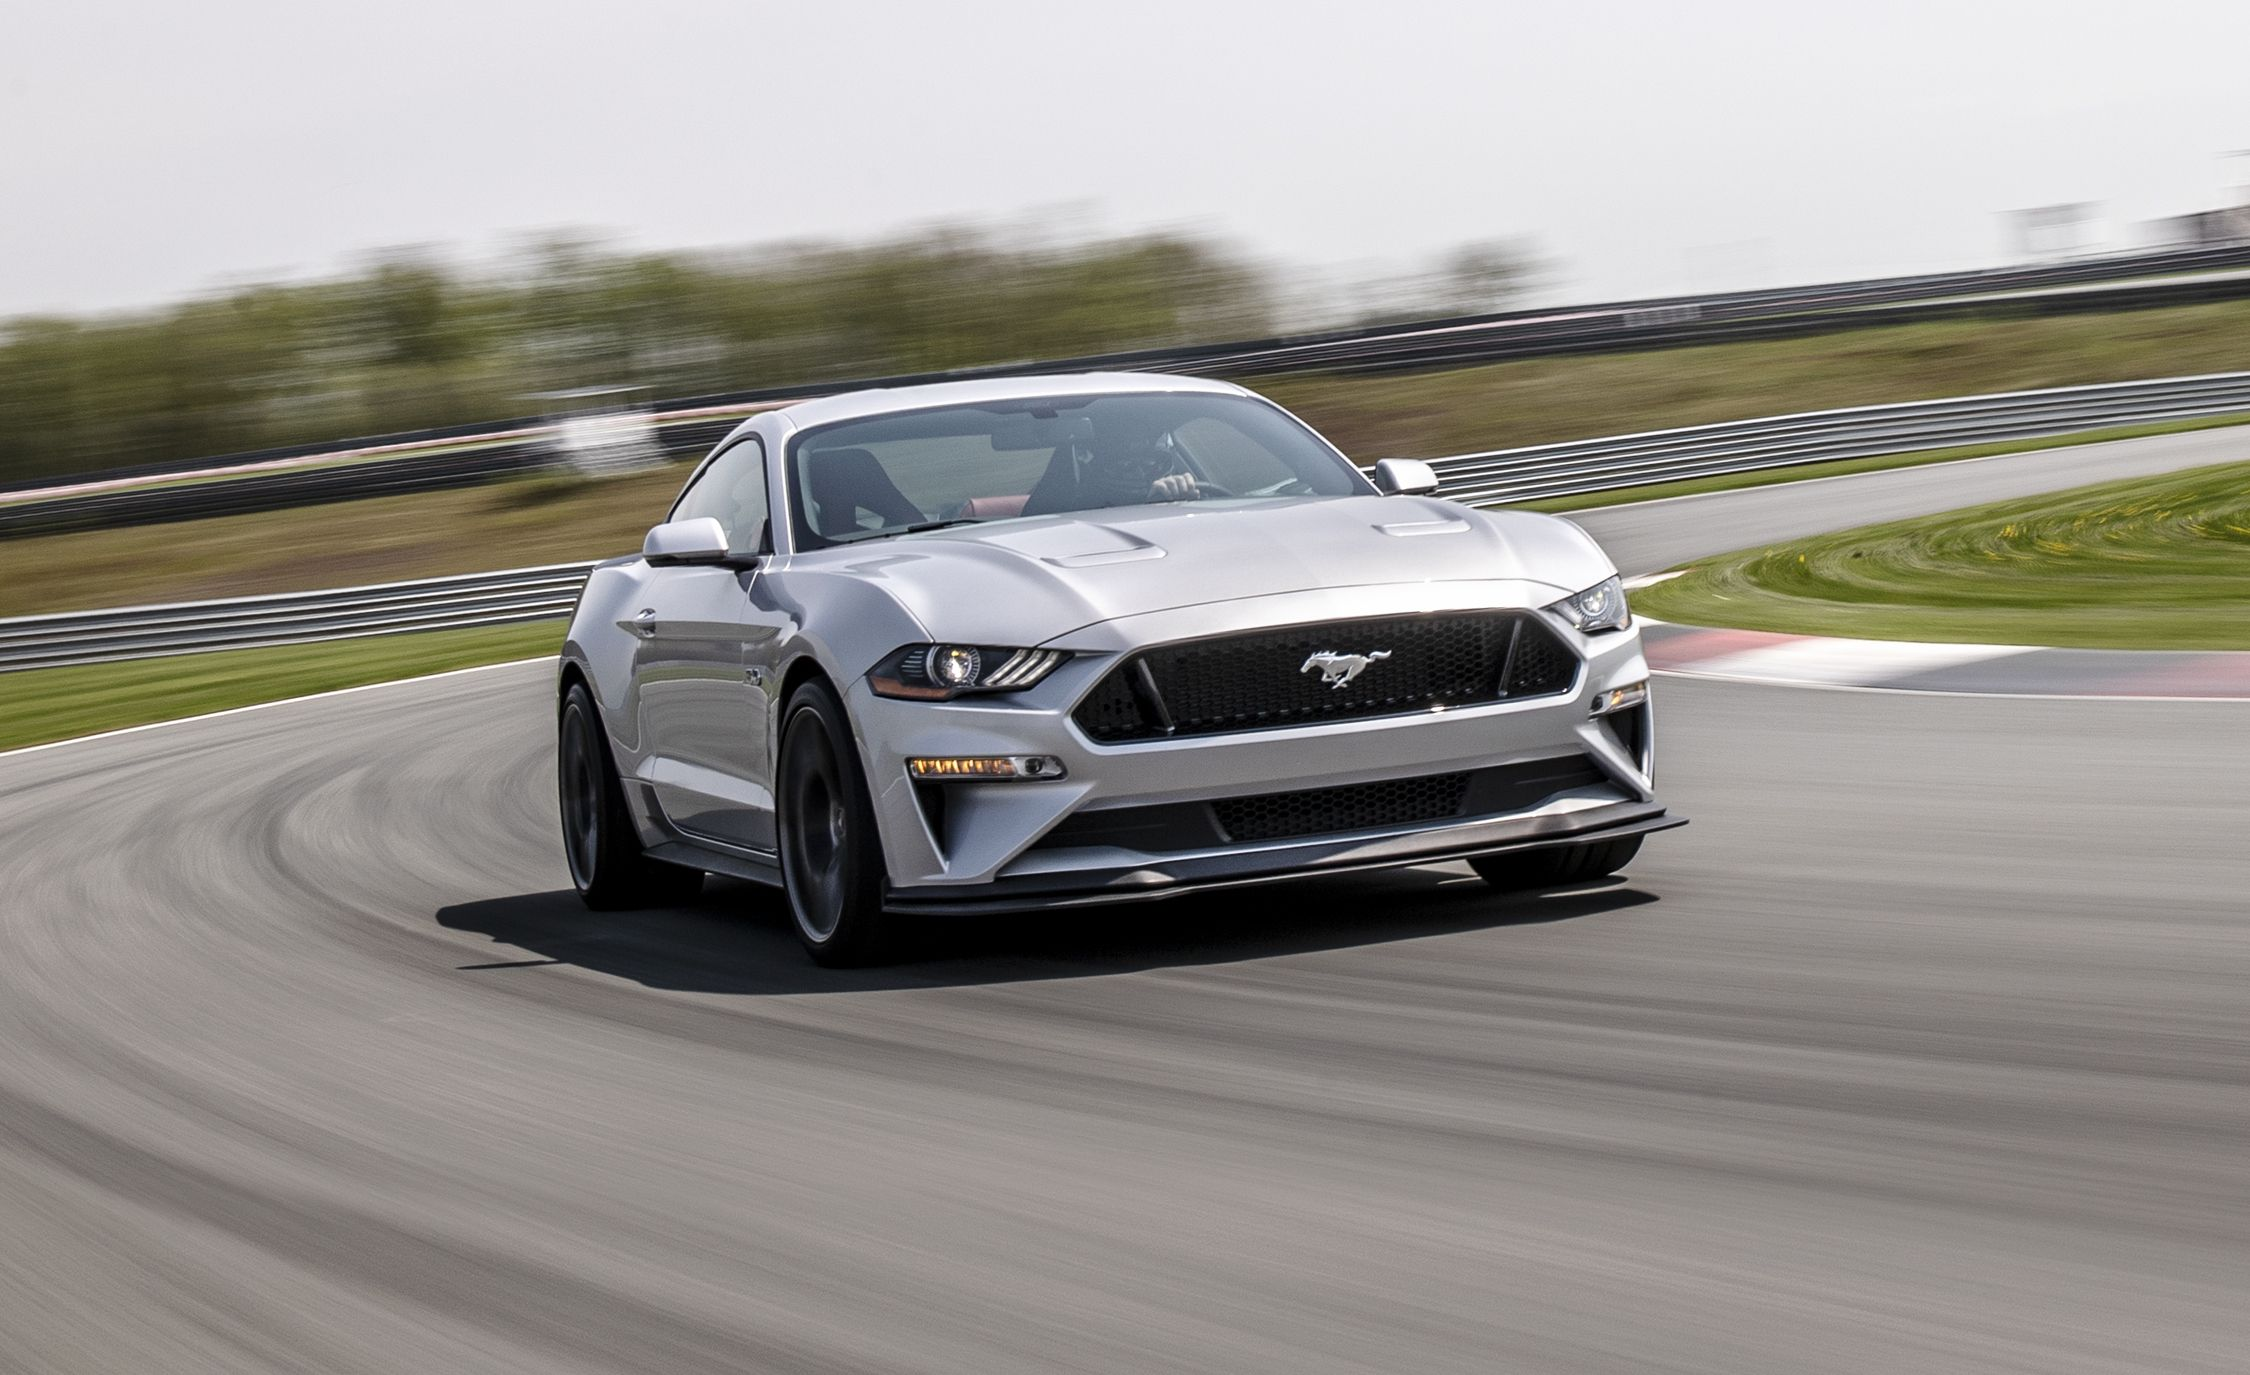 2018 Ford Mustang Gt Performance Package Level 2 0shares